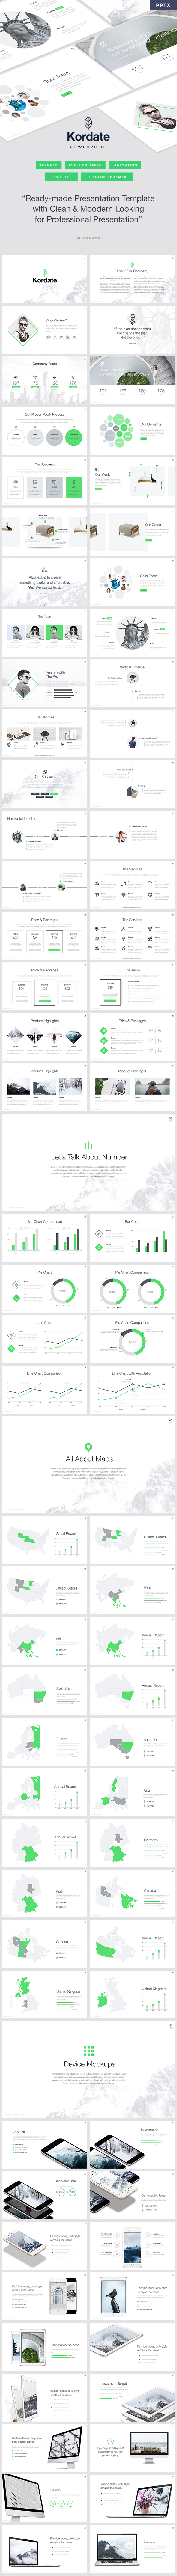 Kordate - Modern and Professional Powerpoint Template - PowerPoint Templates Presentation Templates